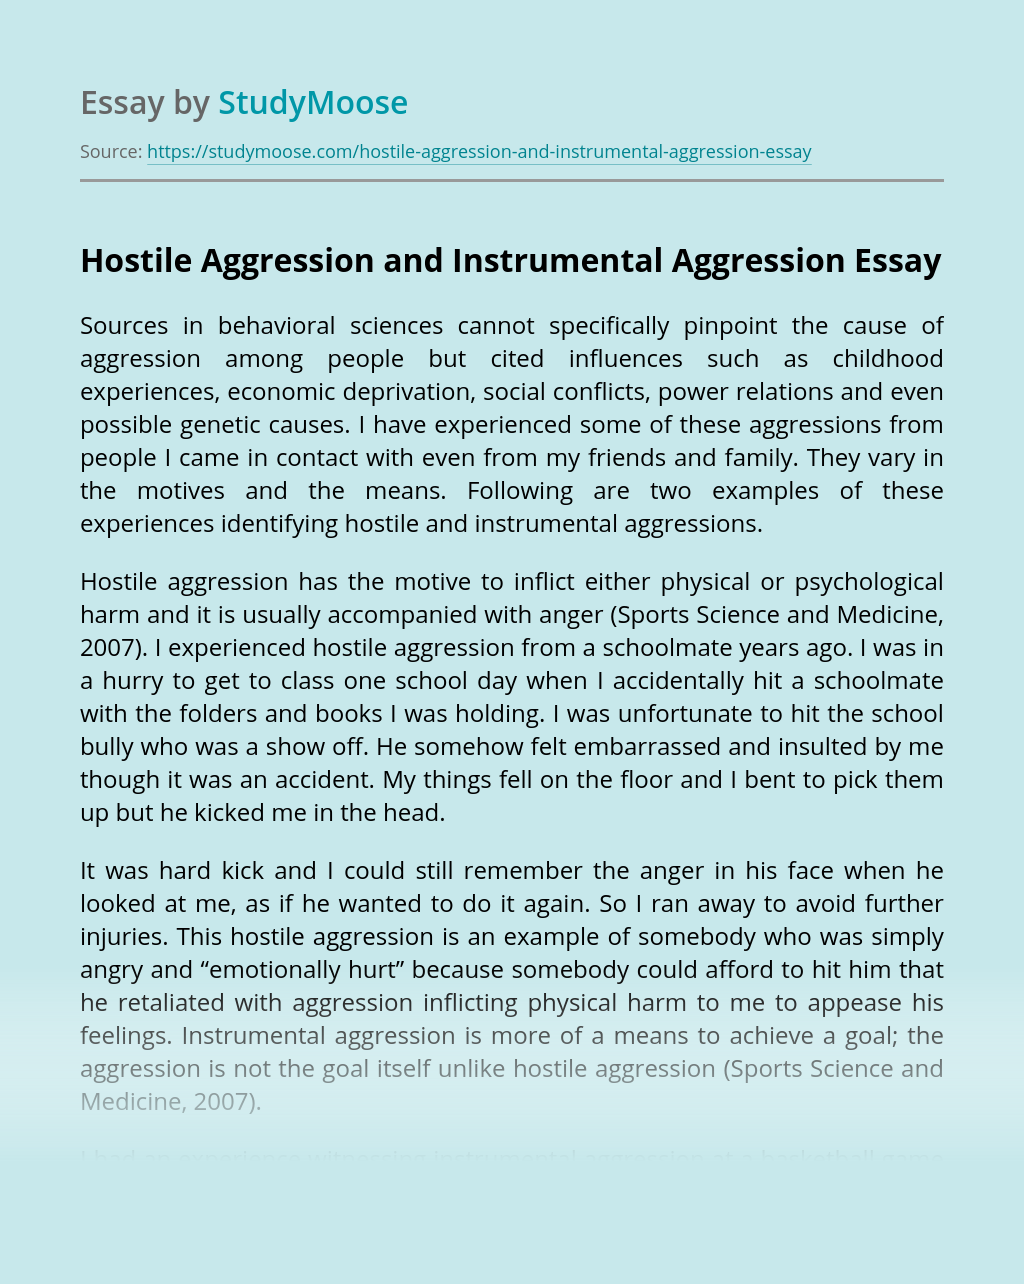 Hostile Aggression and Instrumental Aggression